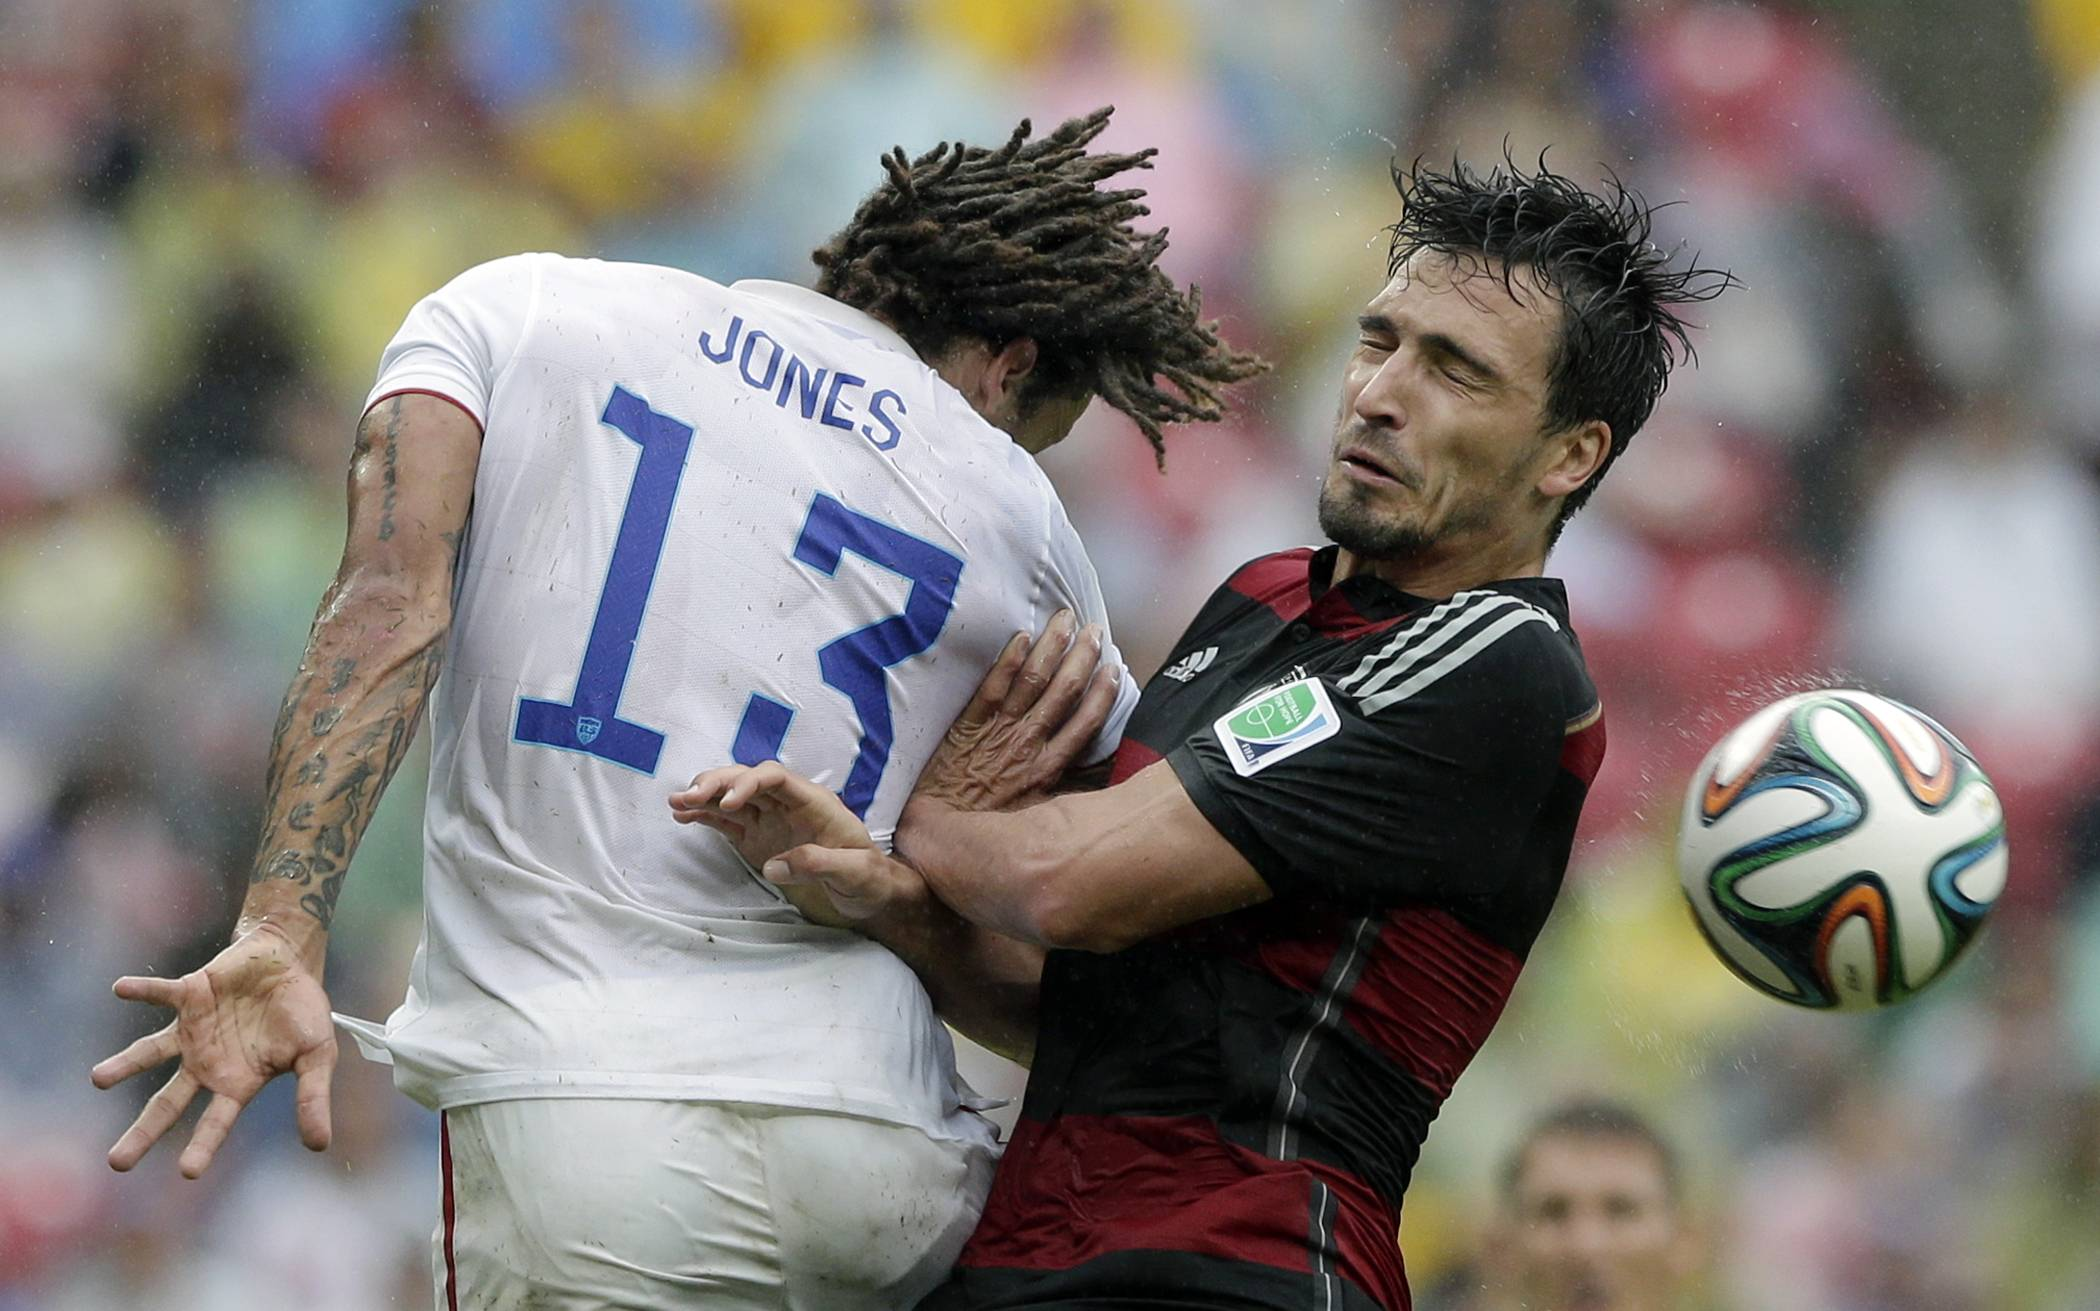 Germany's Mats Hummels, right, and United States' Jermaine Jones go for a header during the group G World Cup soccer match between the USA and Germany at the Arena Pernambuco in Recife, Brazil, Thursday, June 26, 2014.